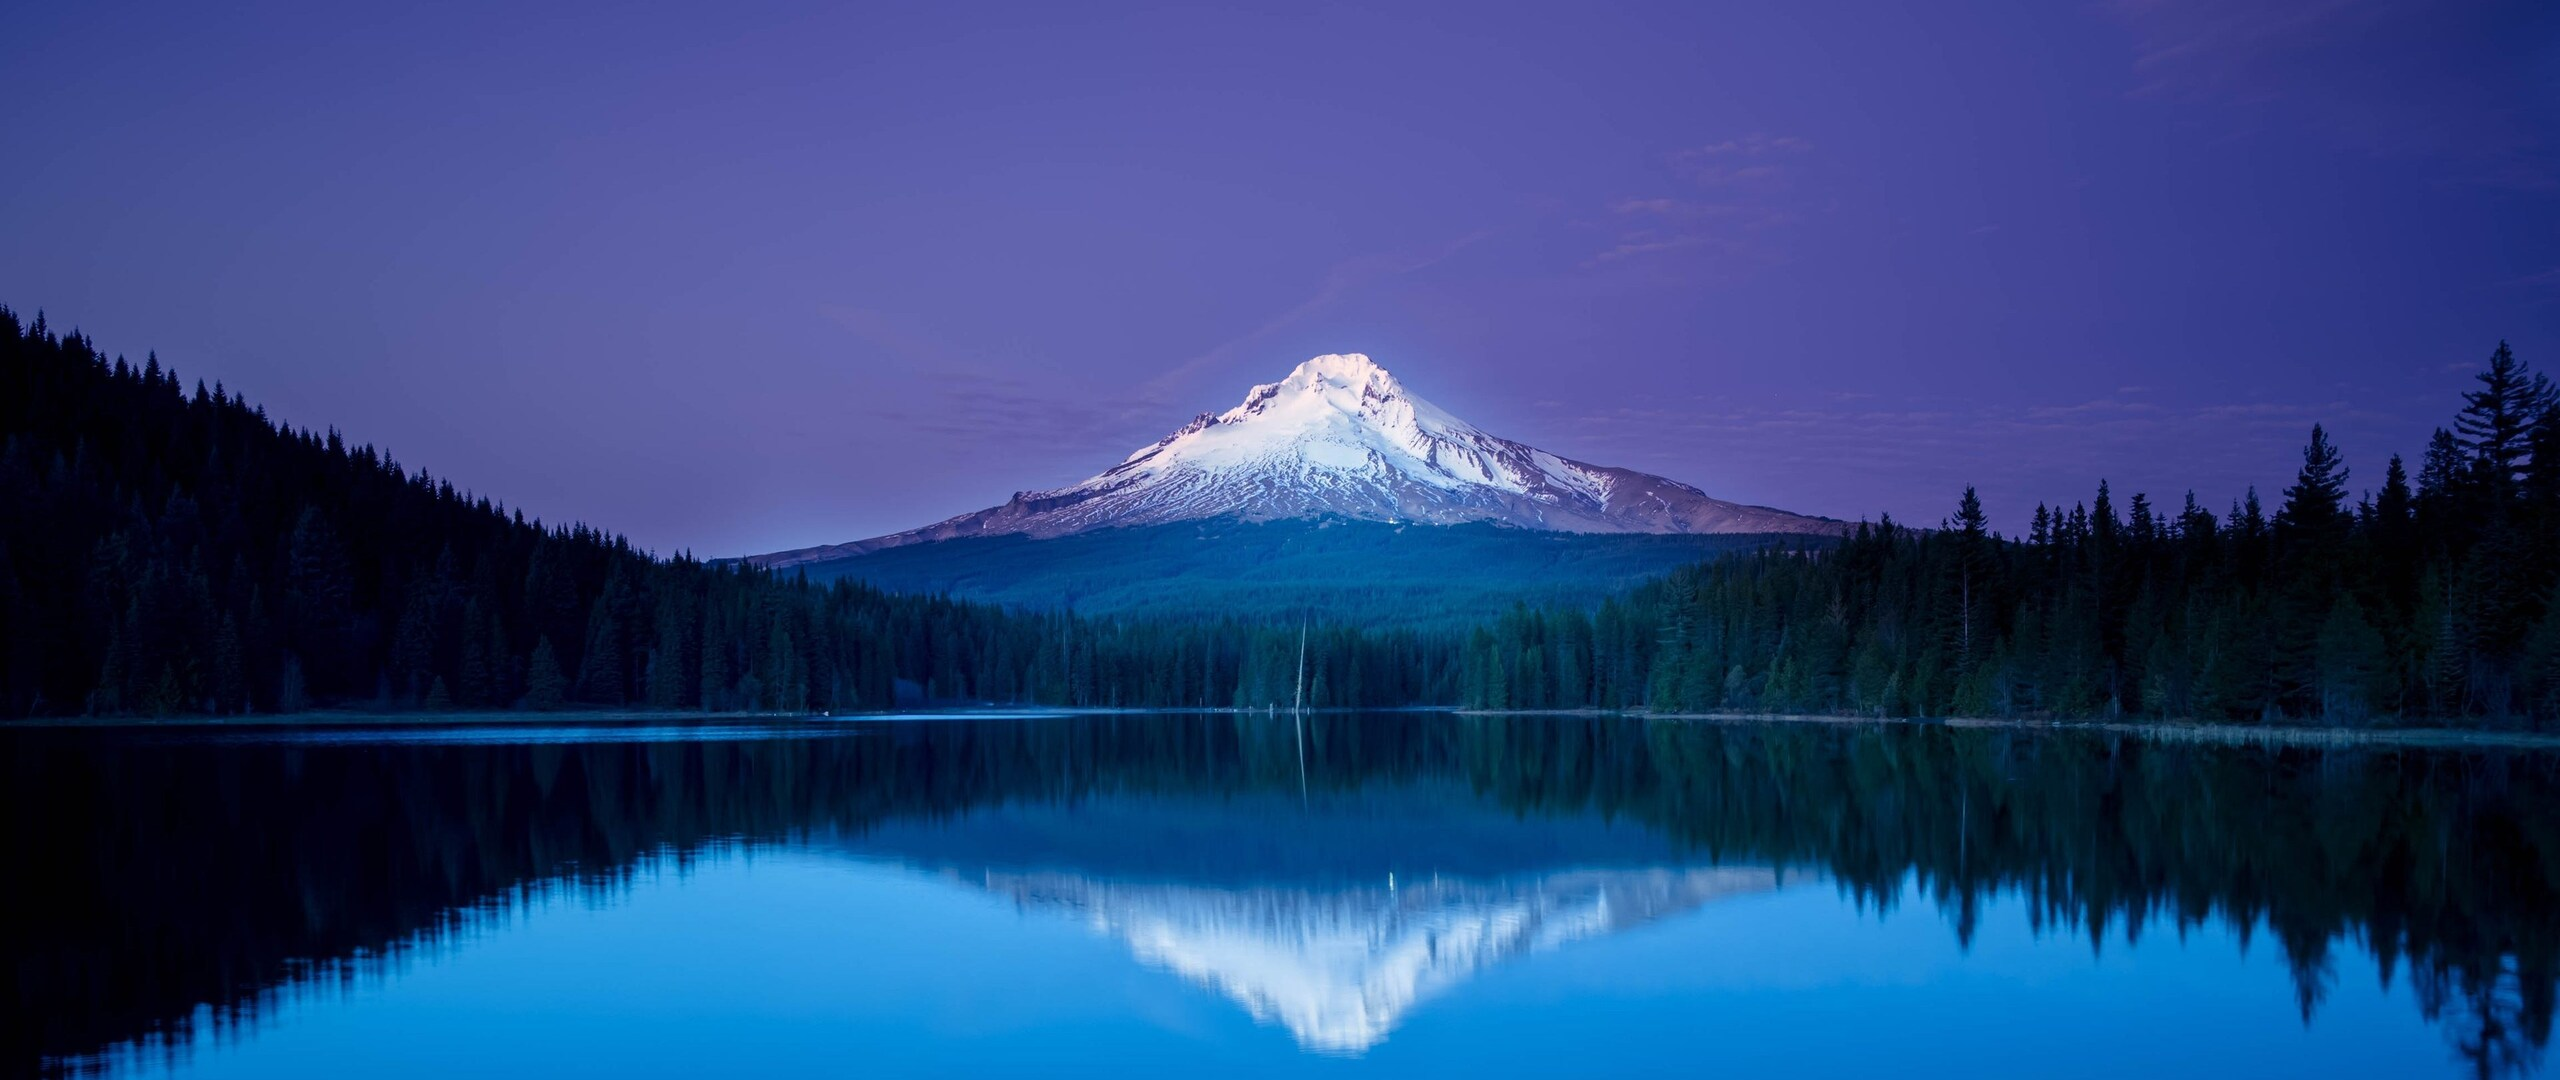 2560x1080 Landscape Lake Mountains 4k Resolution HD Wallpapers Images Backgrounds Photos And Pictures